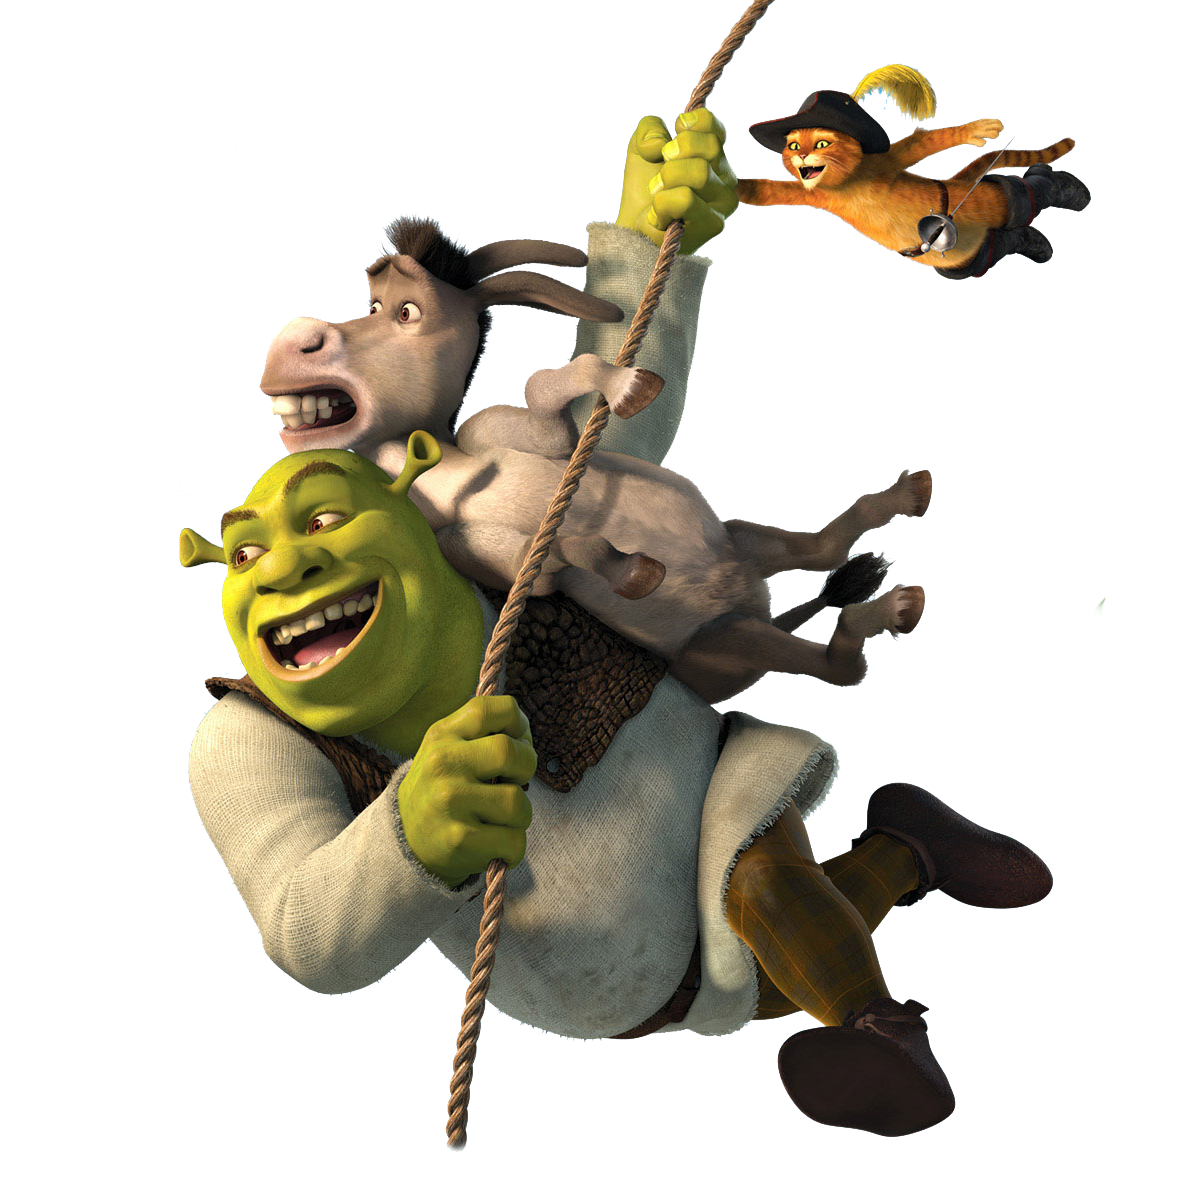 Puss in boots princess. Donkey clipart shrek character